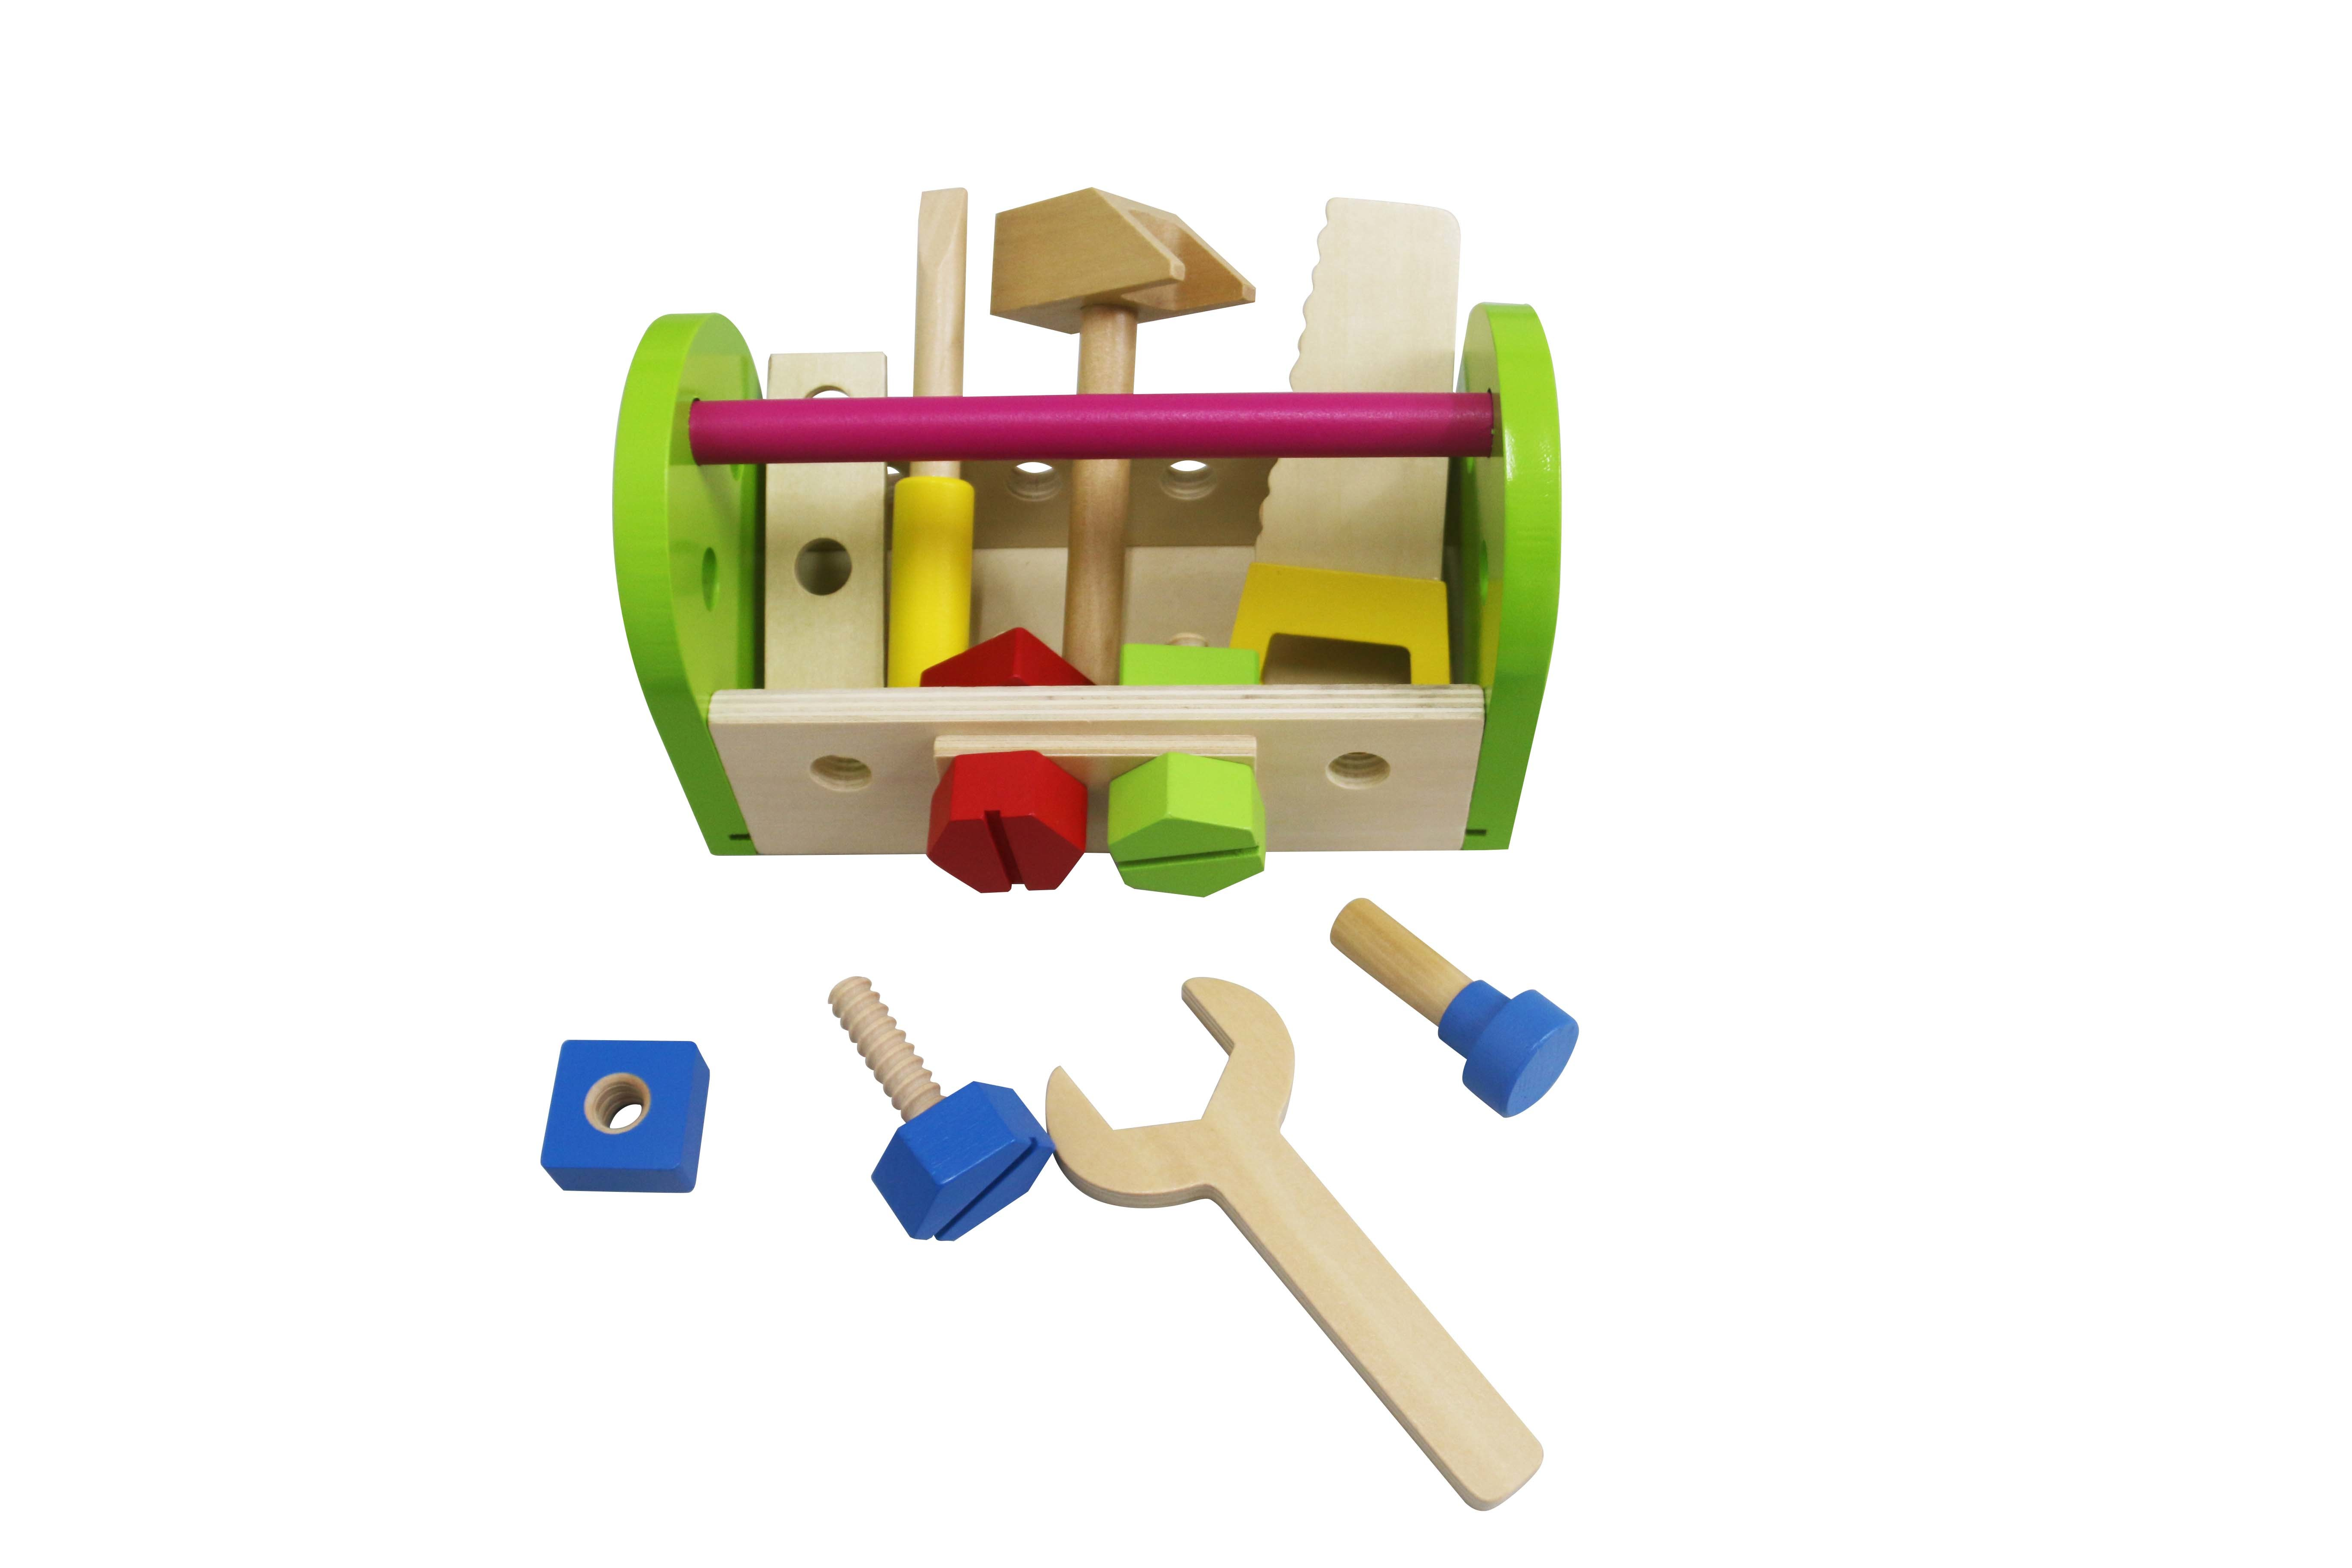 DIY 13PCS Wooden Tool Box Set Toy for Kids and Children